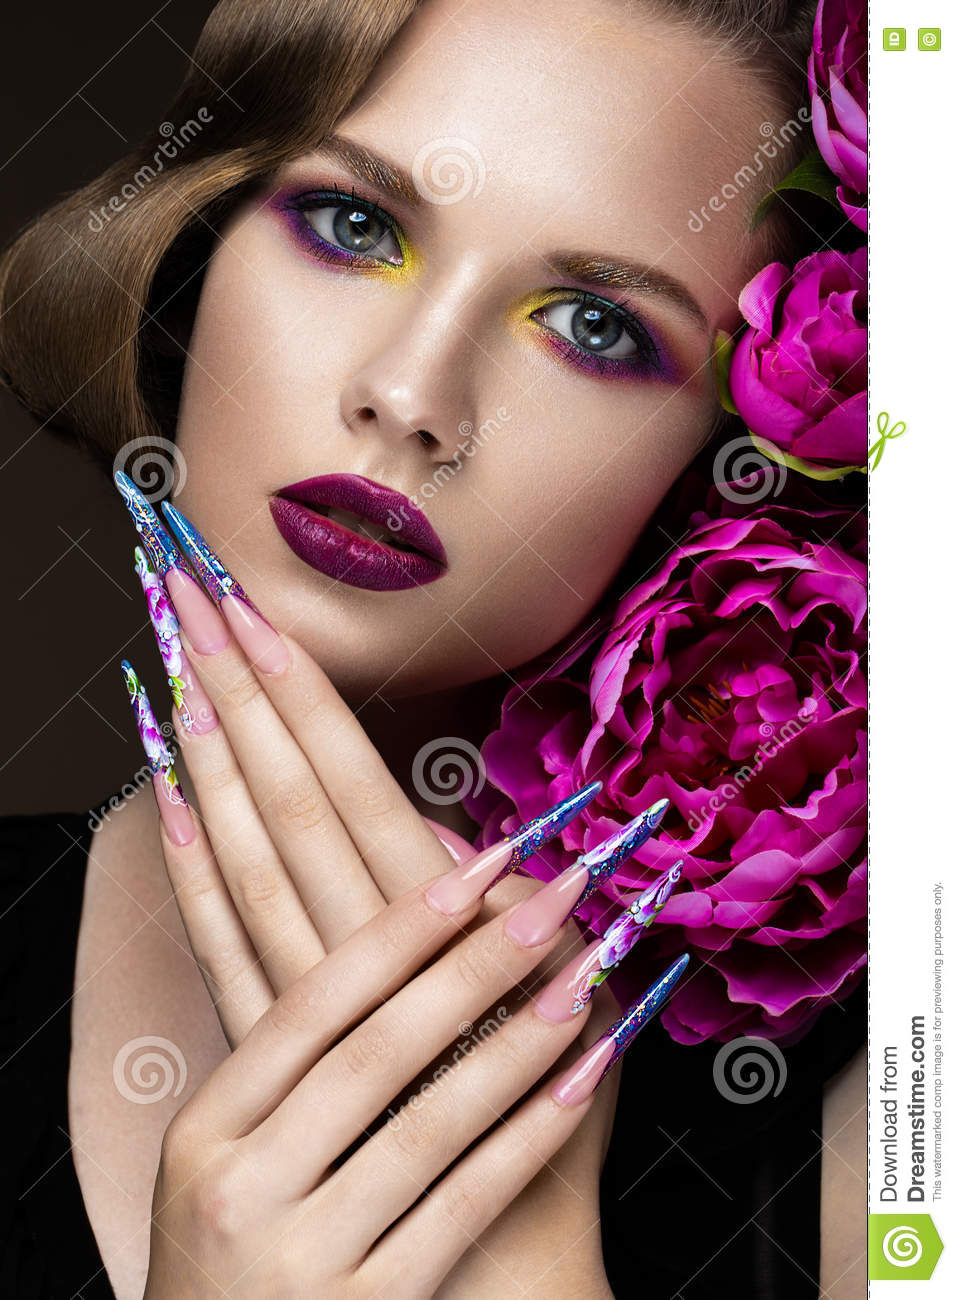 Beautiful Girl With Colorful Make-up, Flowers, Retro